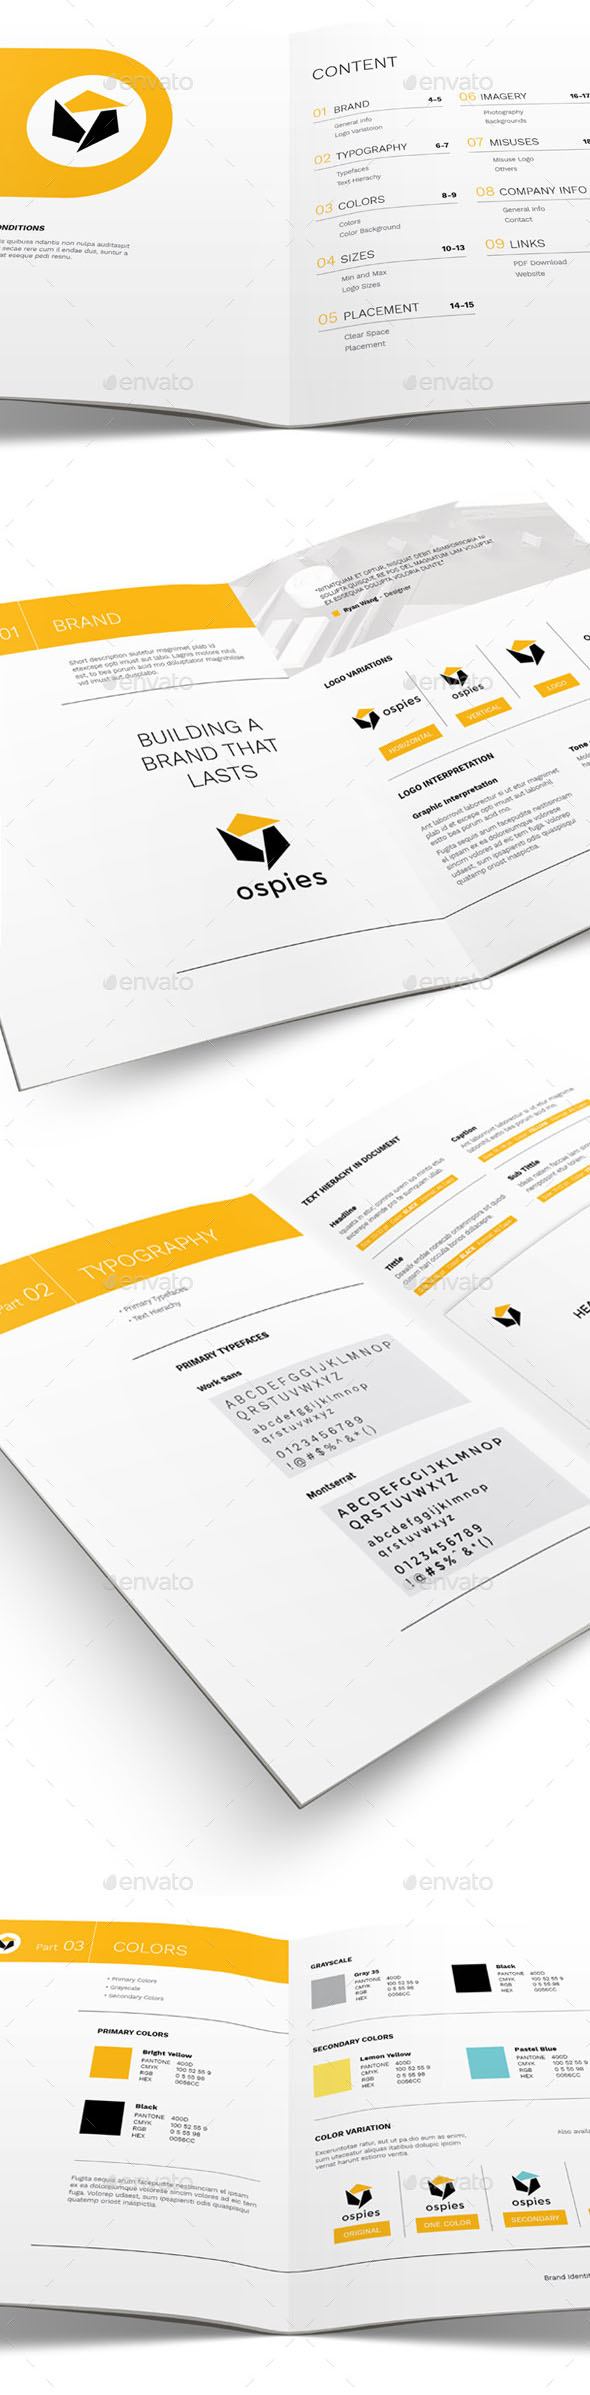 Corporate Brand Identity Guidelines